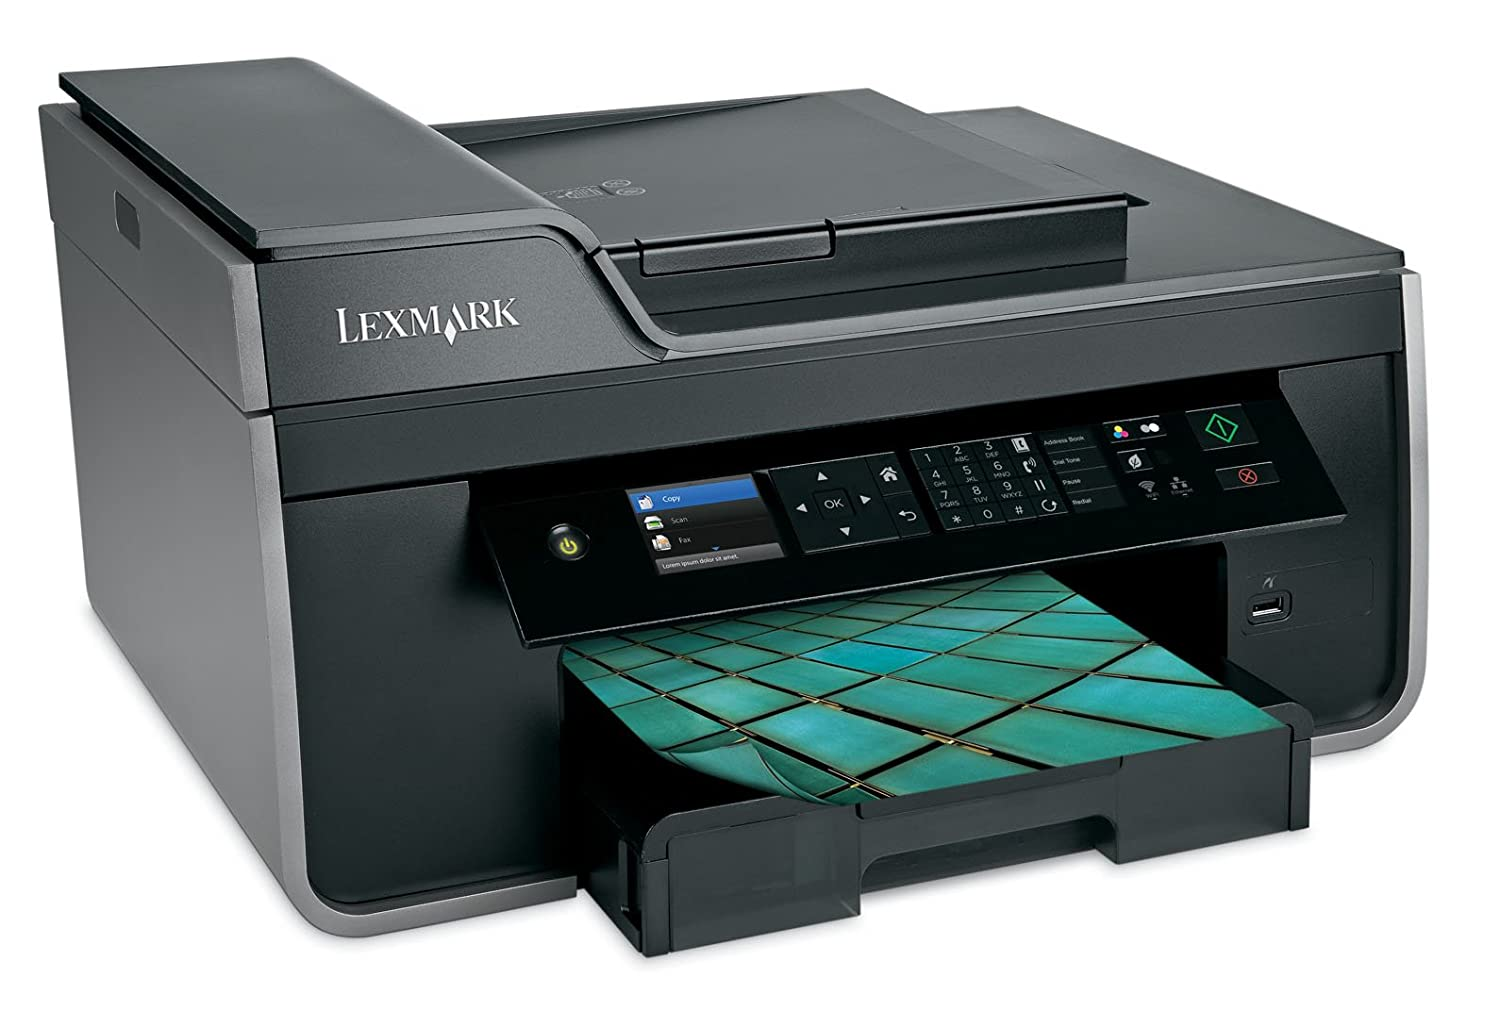 Amazon.com : Lexmark Pro715 Wireless Inkjet All-in-One Printer ...